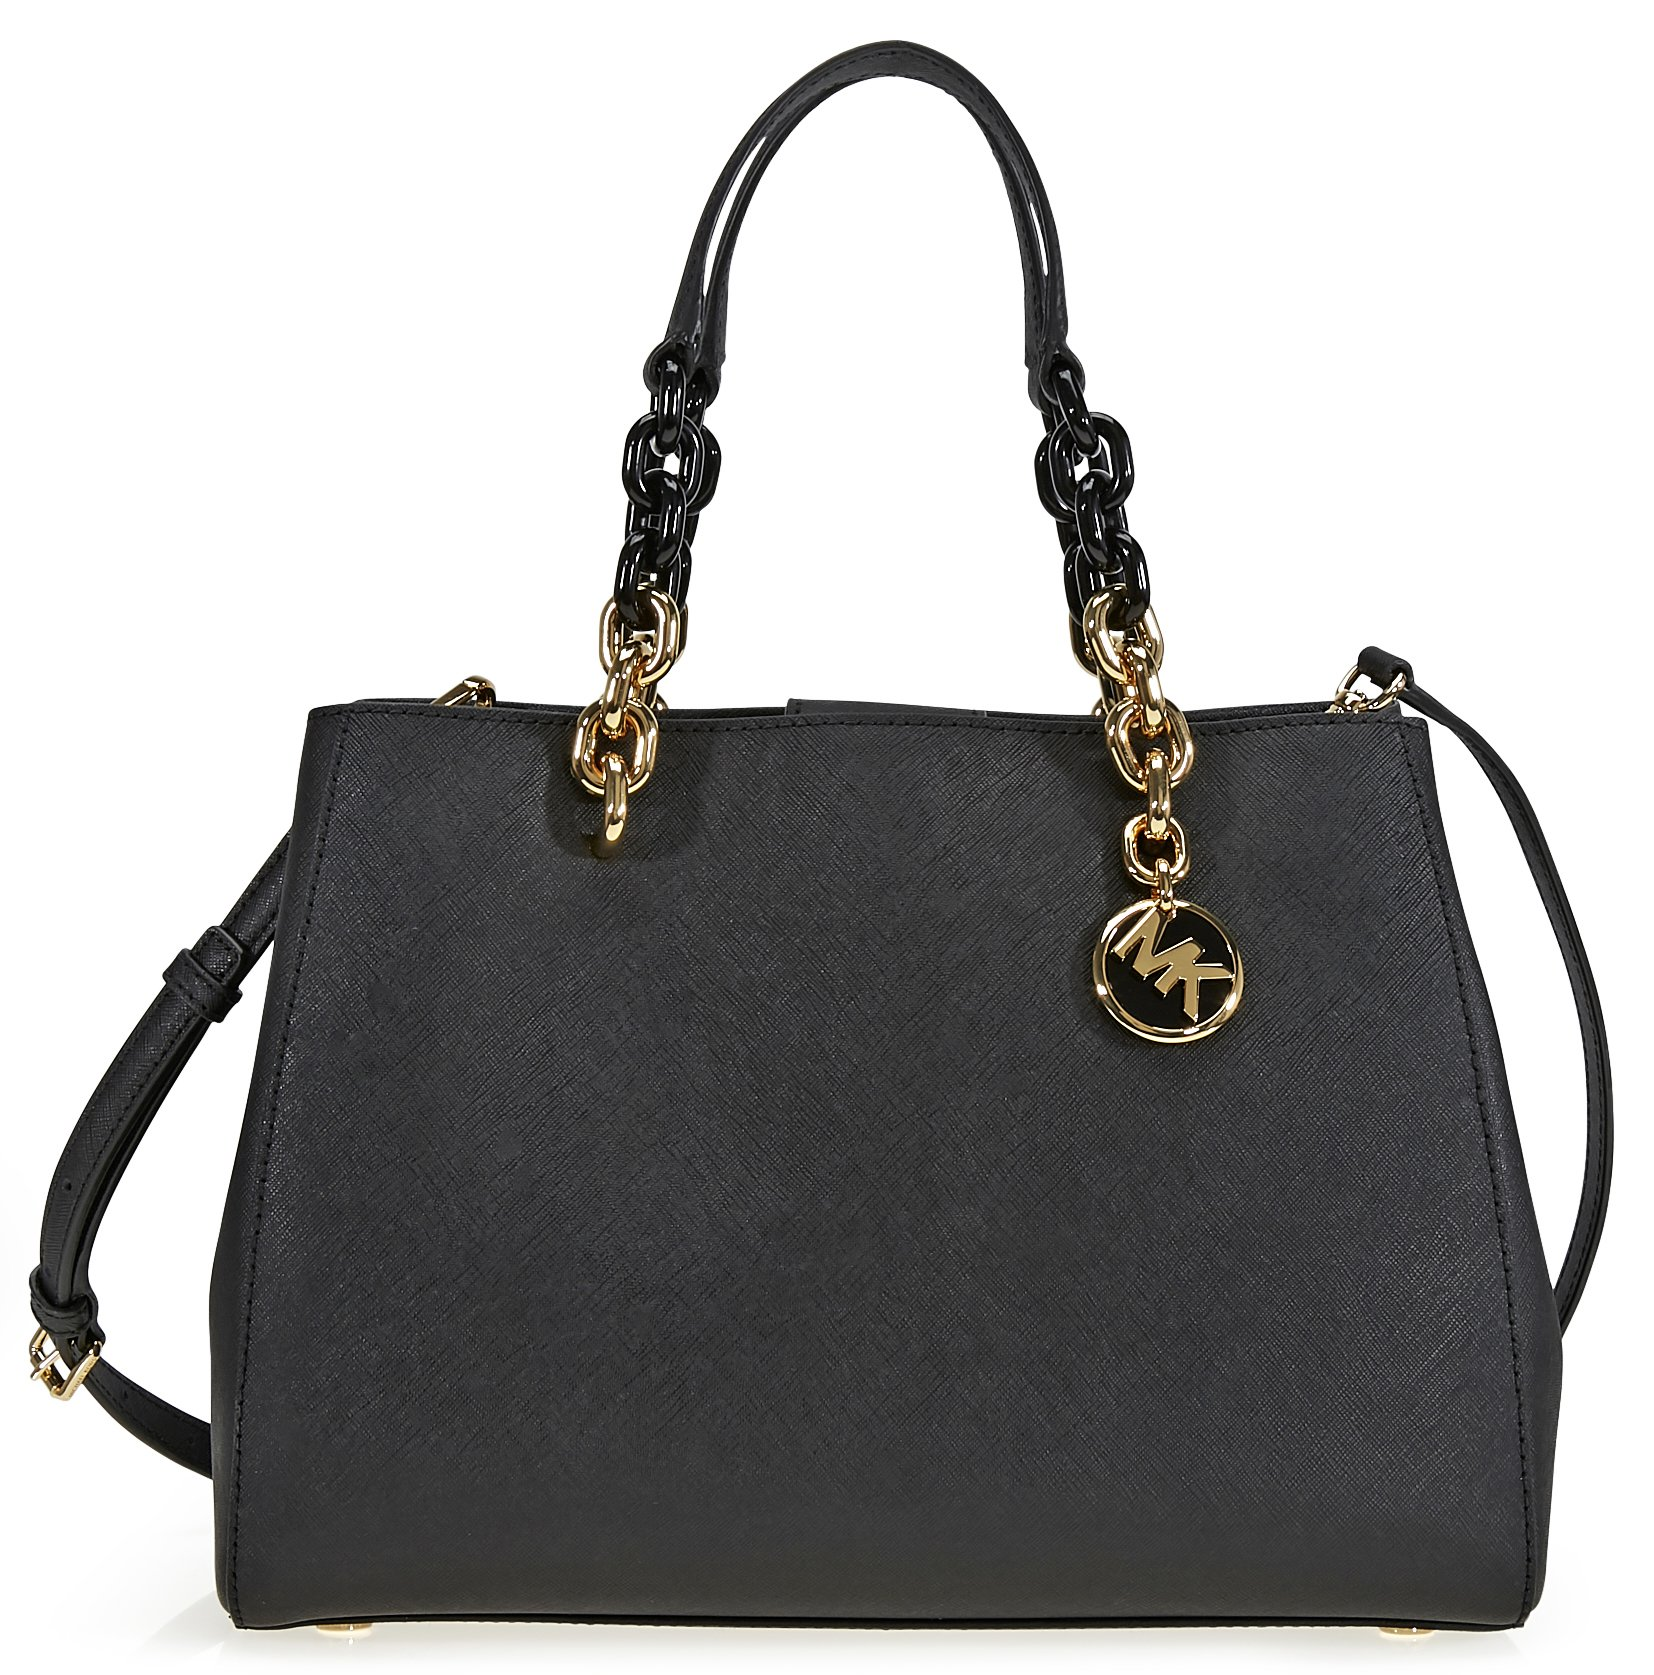 b1af9dc46ee0 Get Quotations · MICHAEL Michael Kors Cynthia Saffiano Leather Satchel